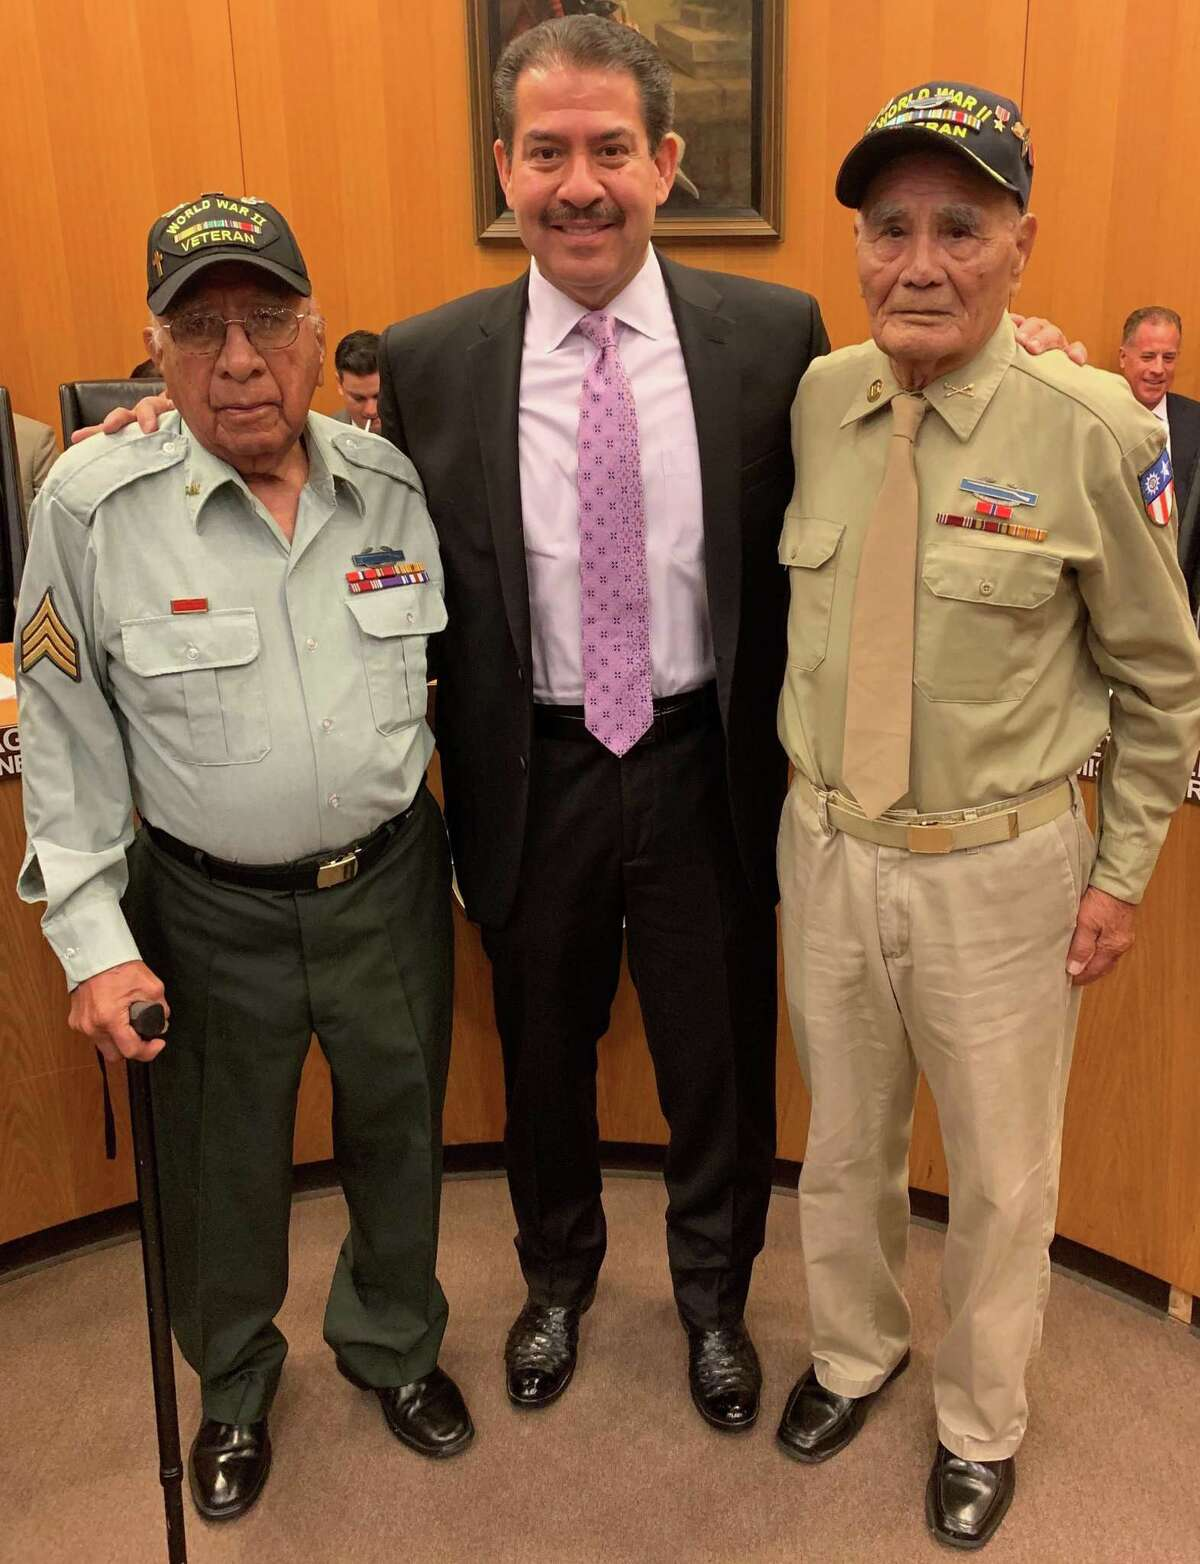 World War II veterans David Loredo, left, and Vicente Moreno were honored this past August for their service by Harris County Precinct 2 Commission Adrian Garcia.